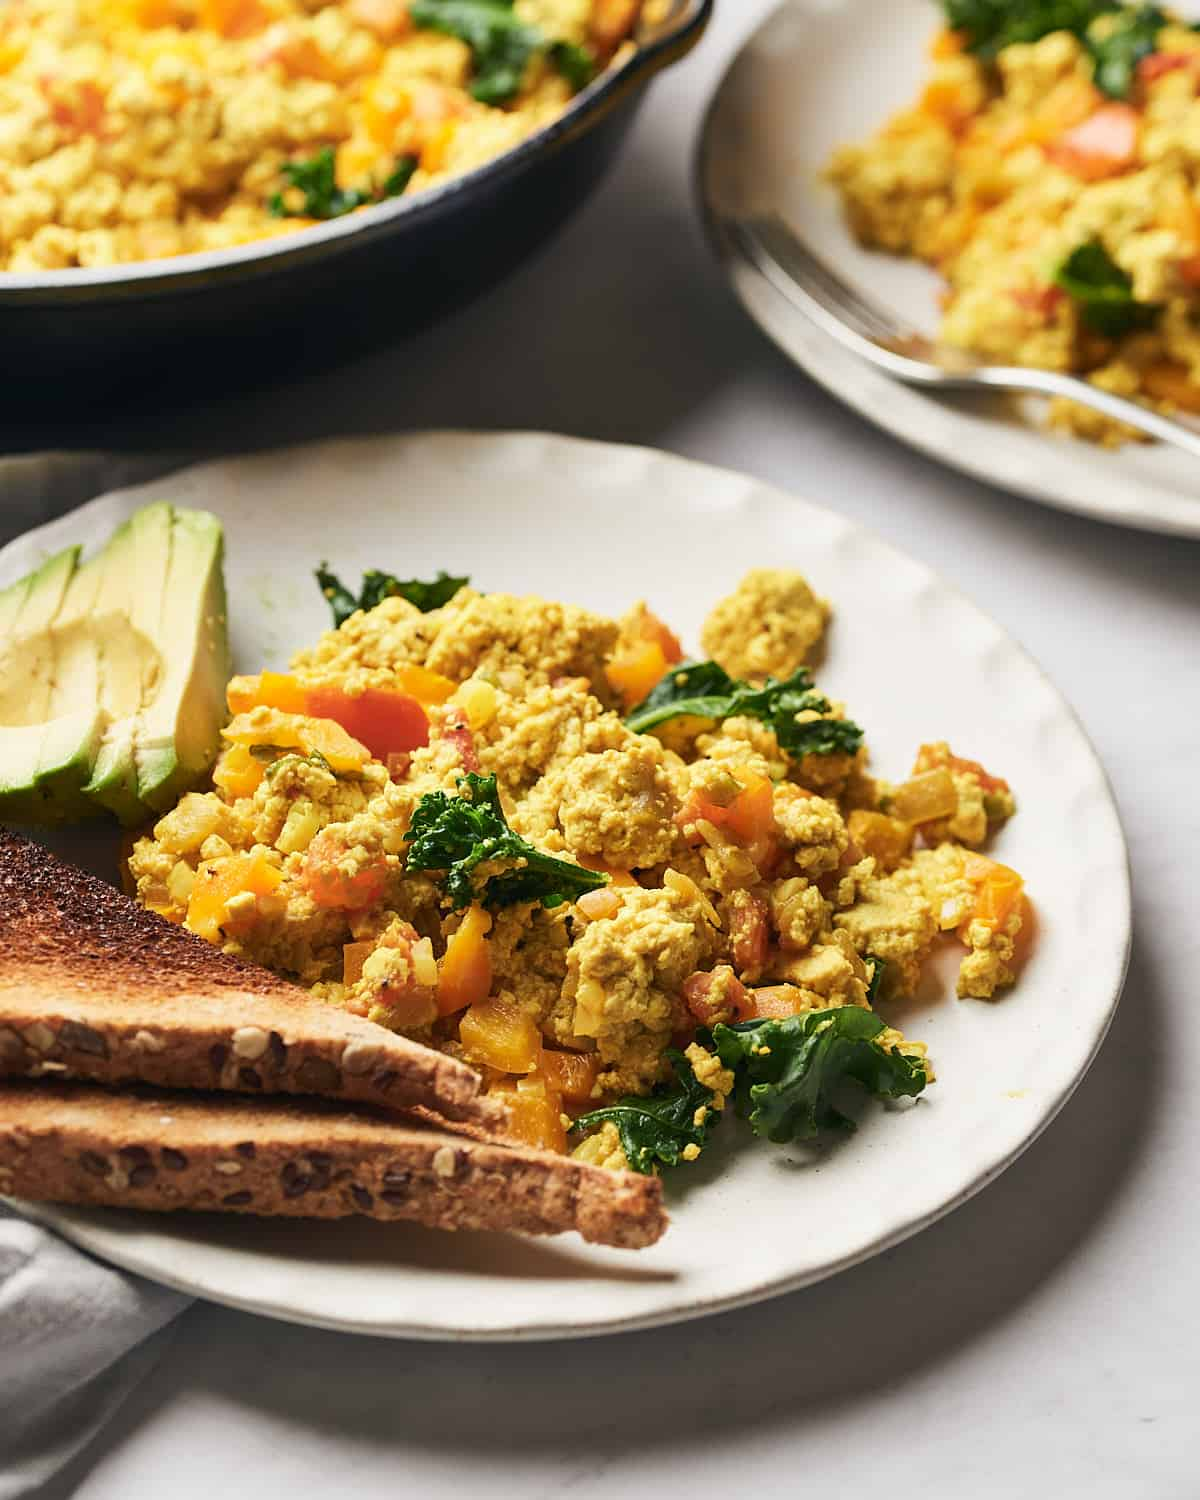 Side view of scrambled tofu on plate with toast and avocado